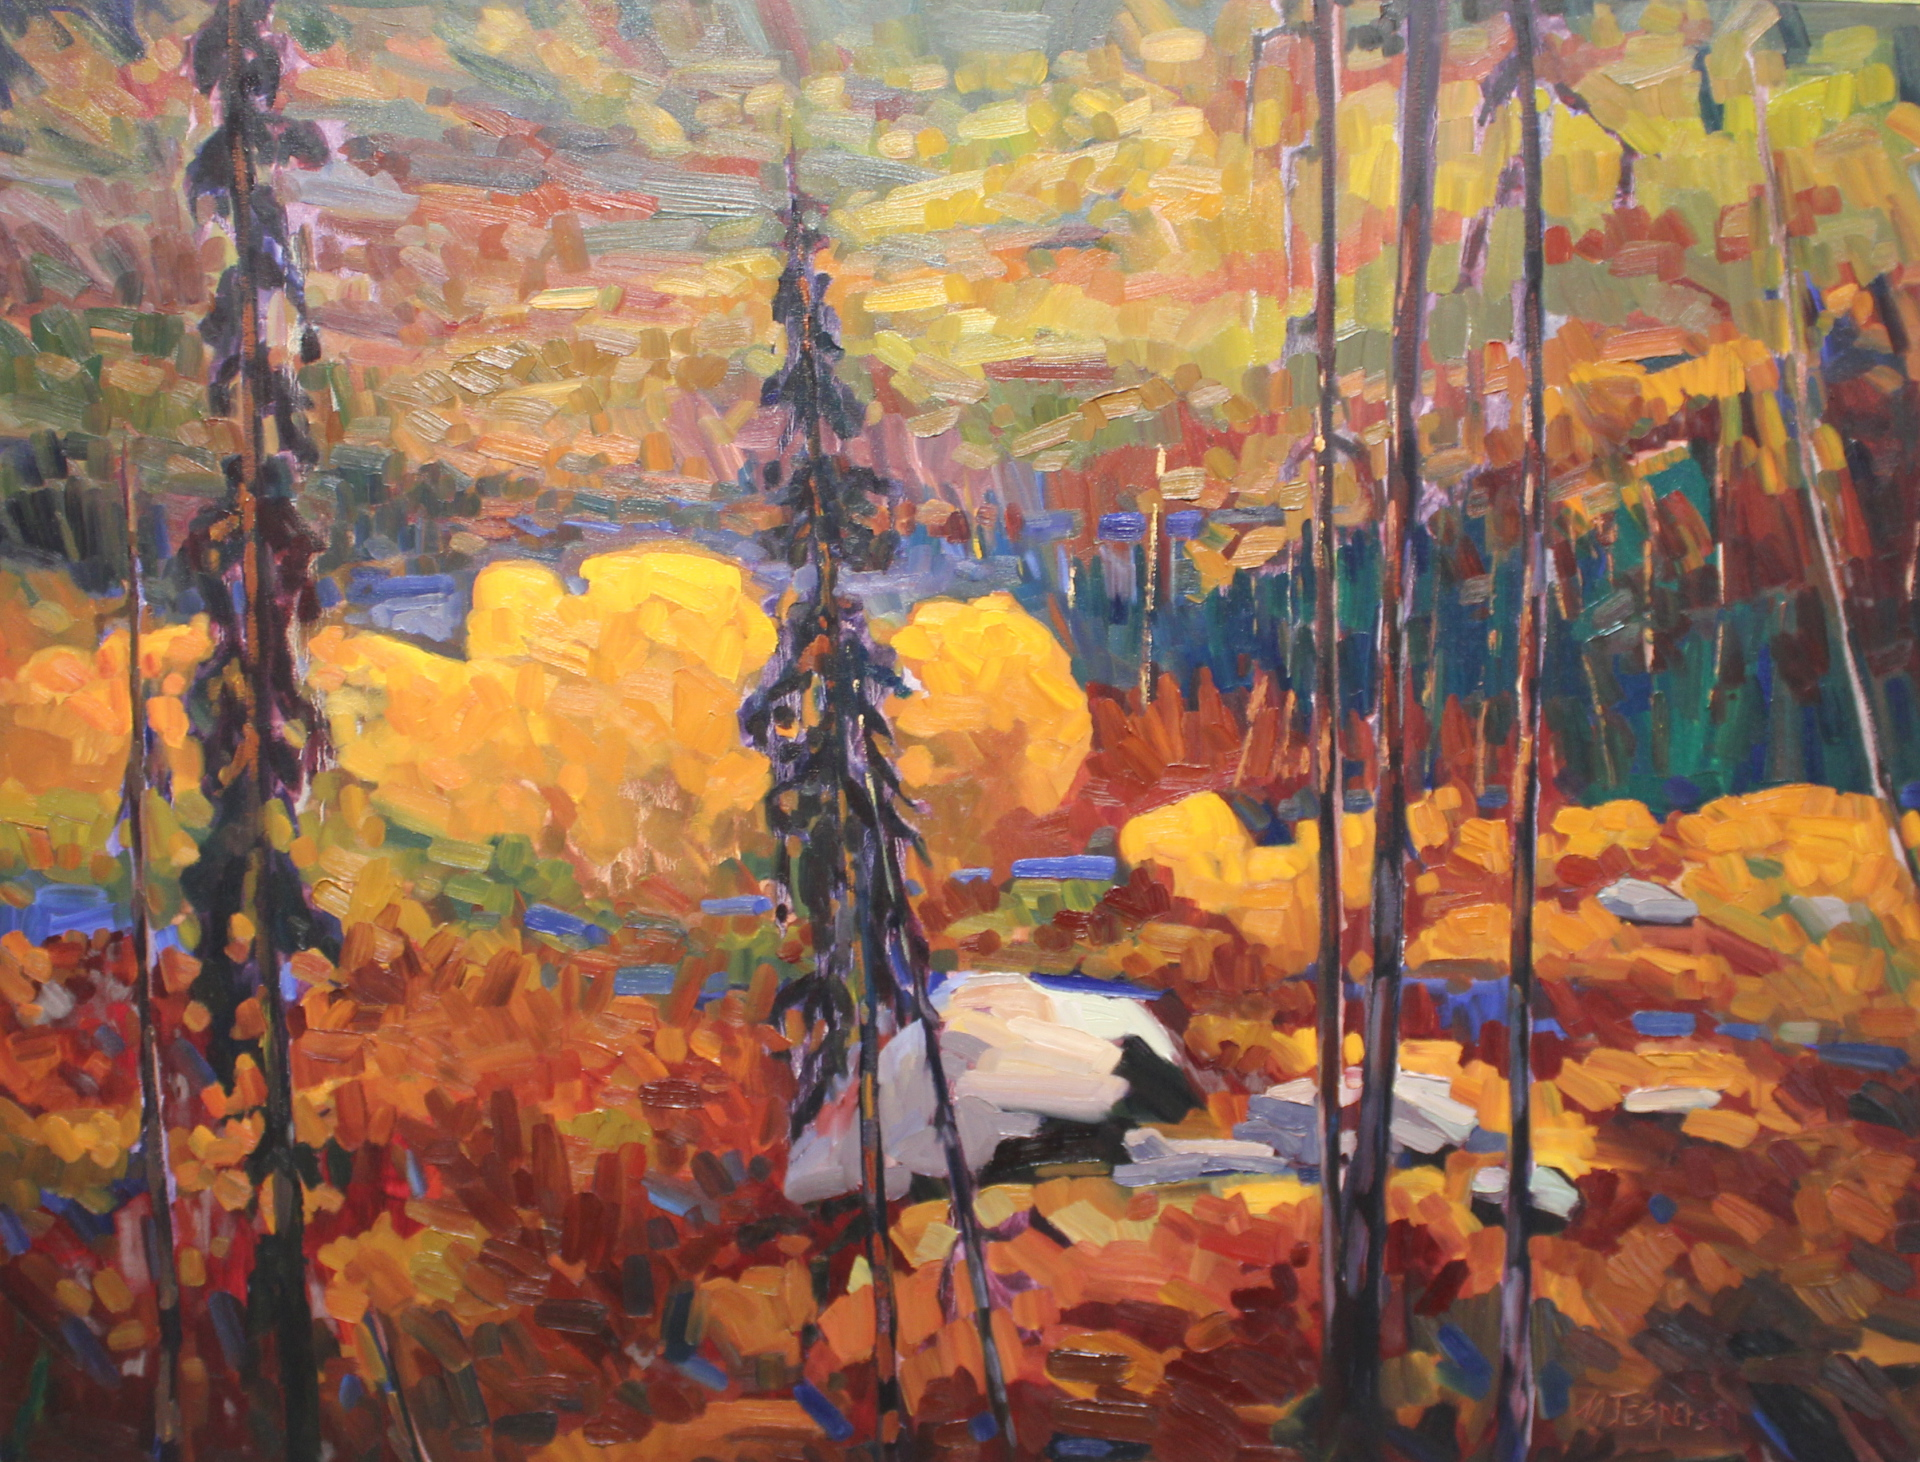 MTN TOP TREASURE - 36X48 - OIL ON CANVAS - 2013